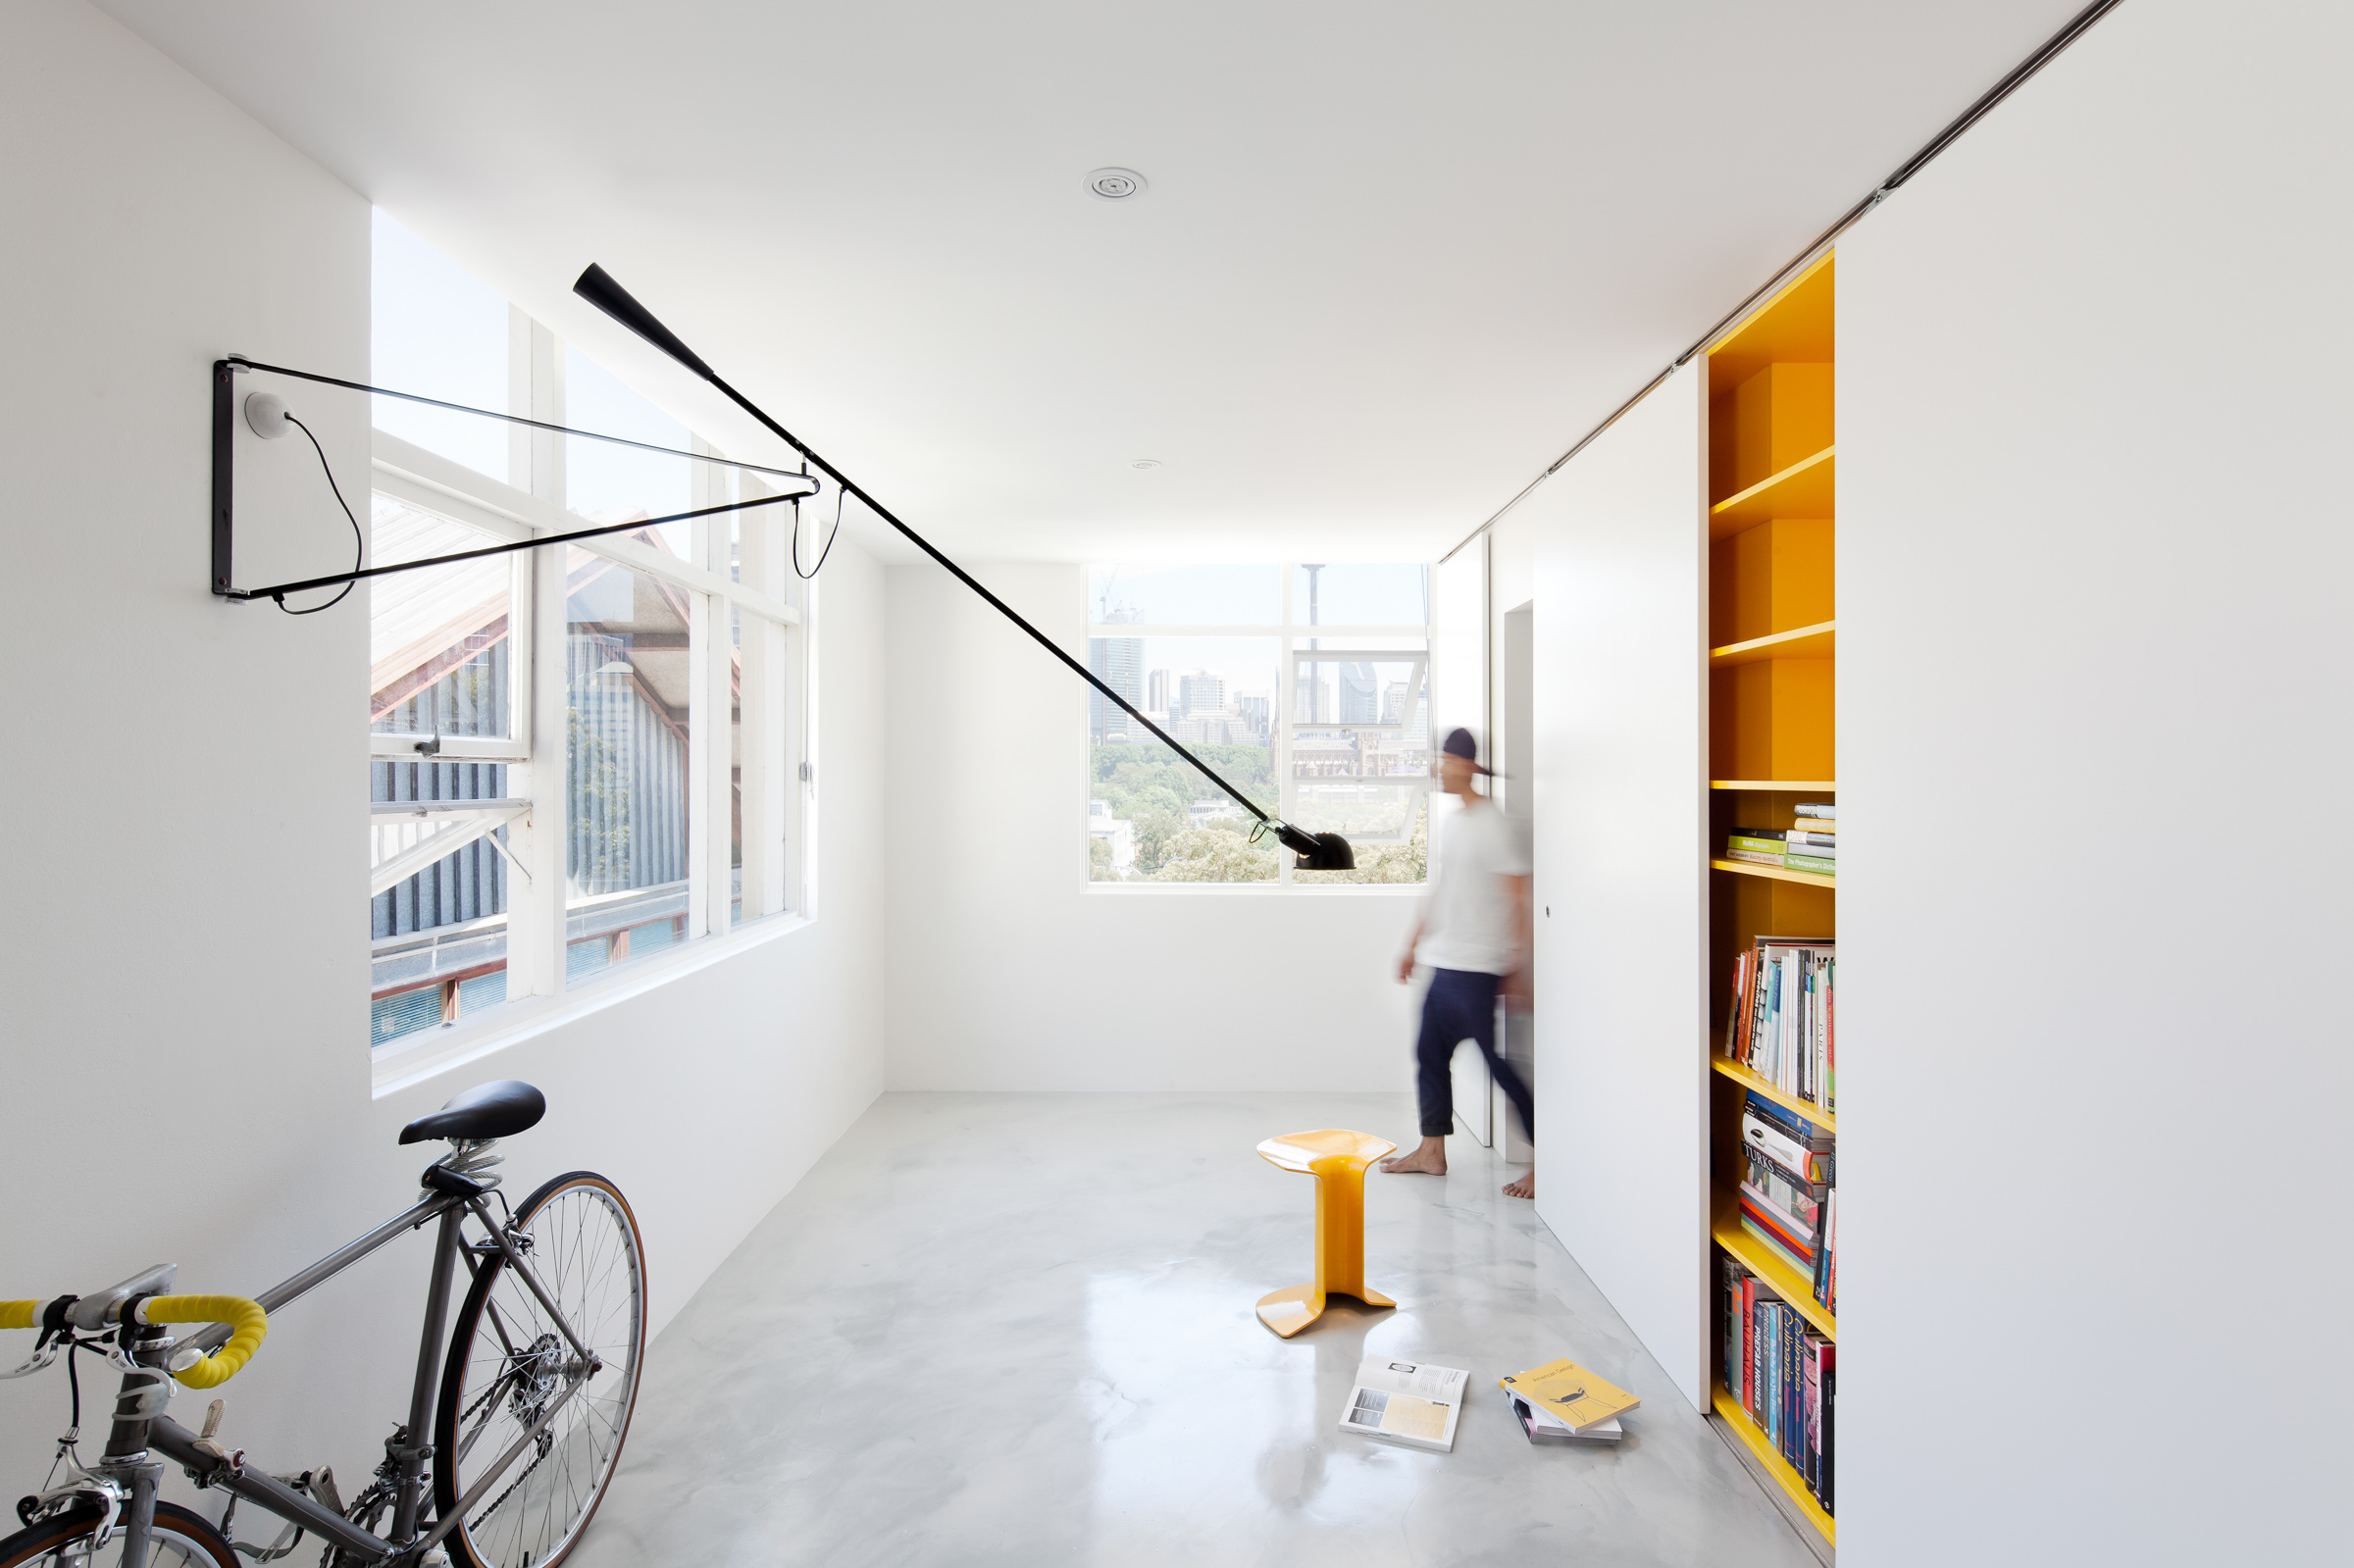 Small Space Living - Nicholas Gurney Interview - Softer Volumes